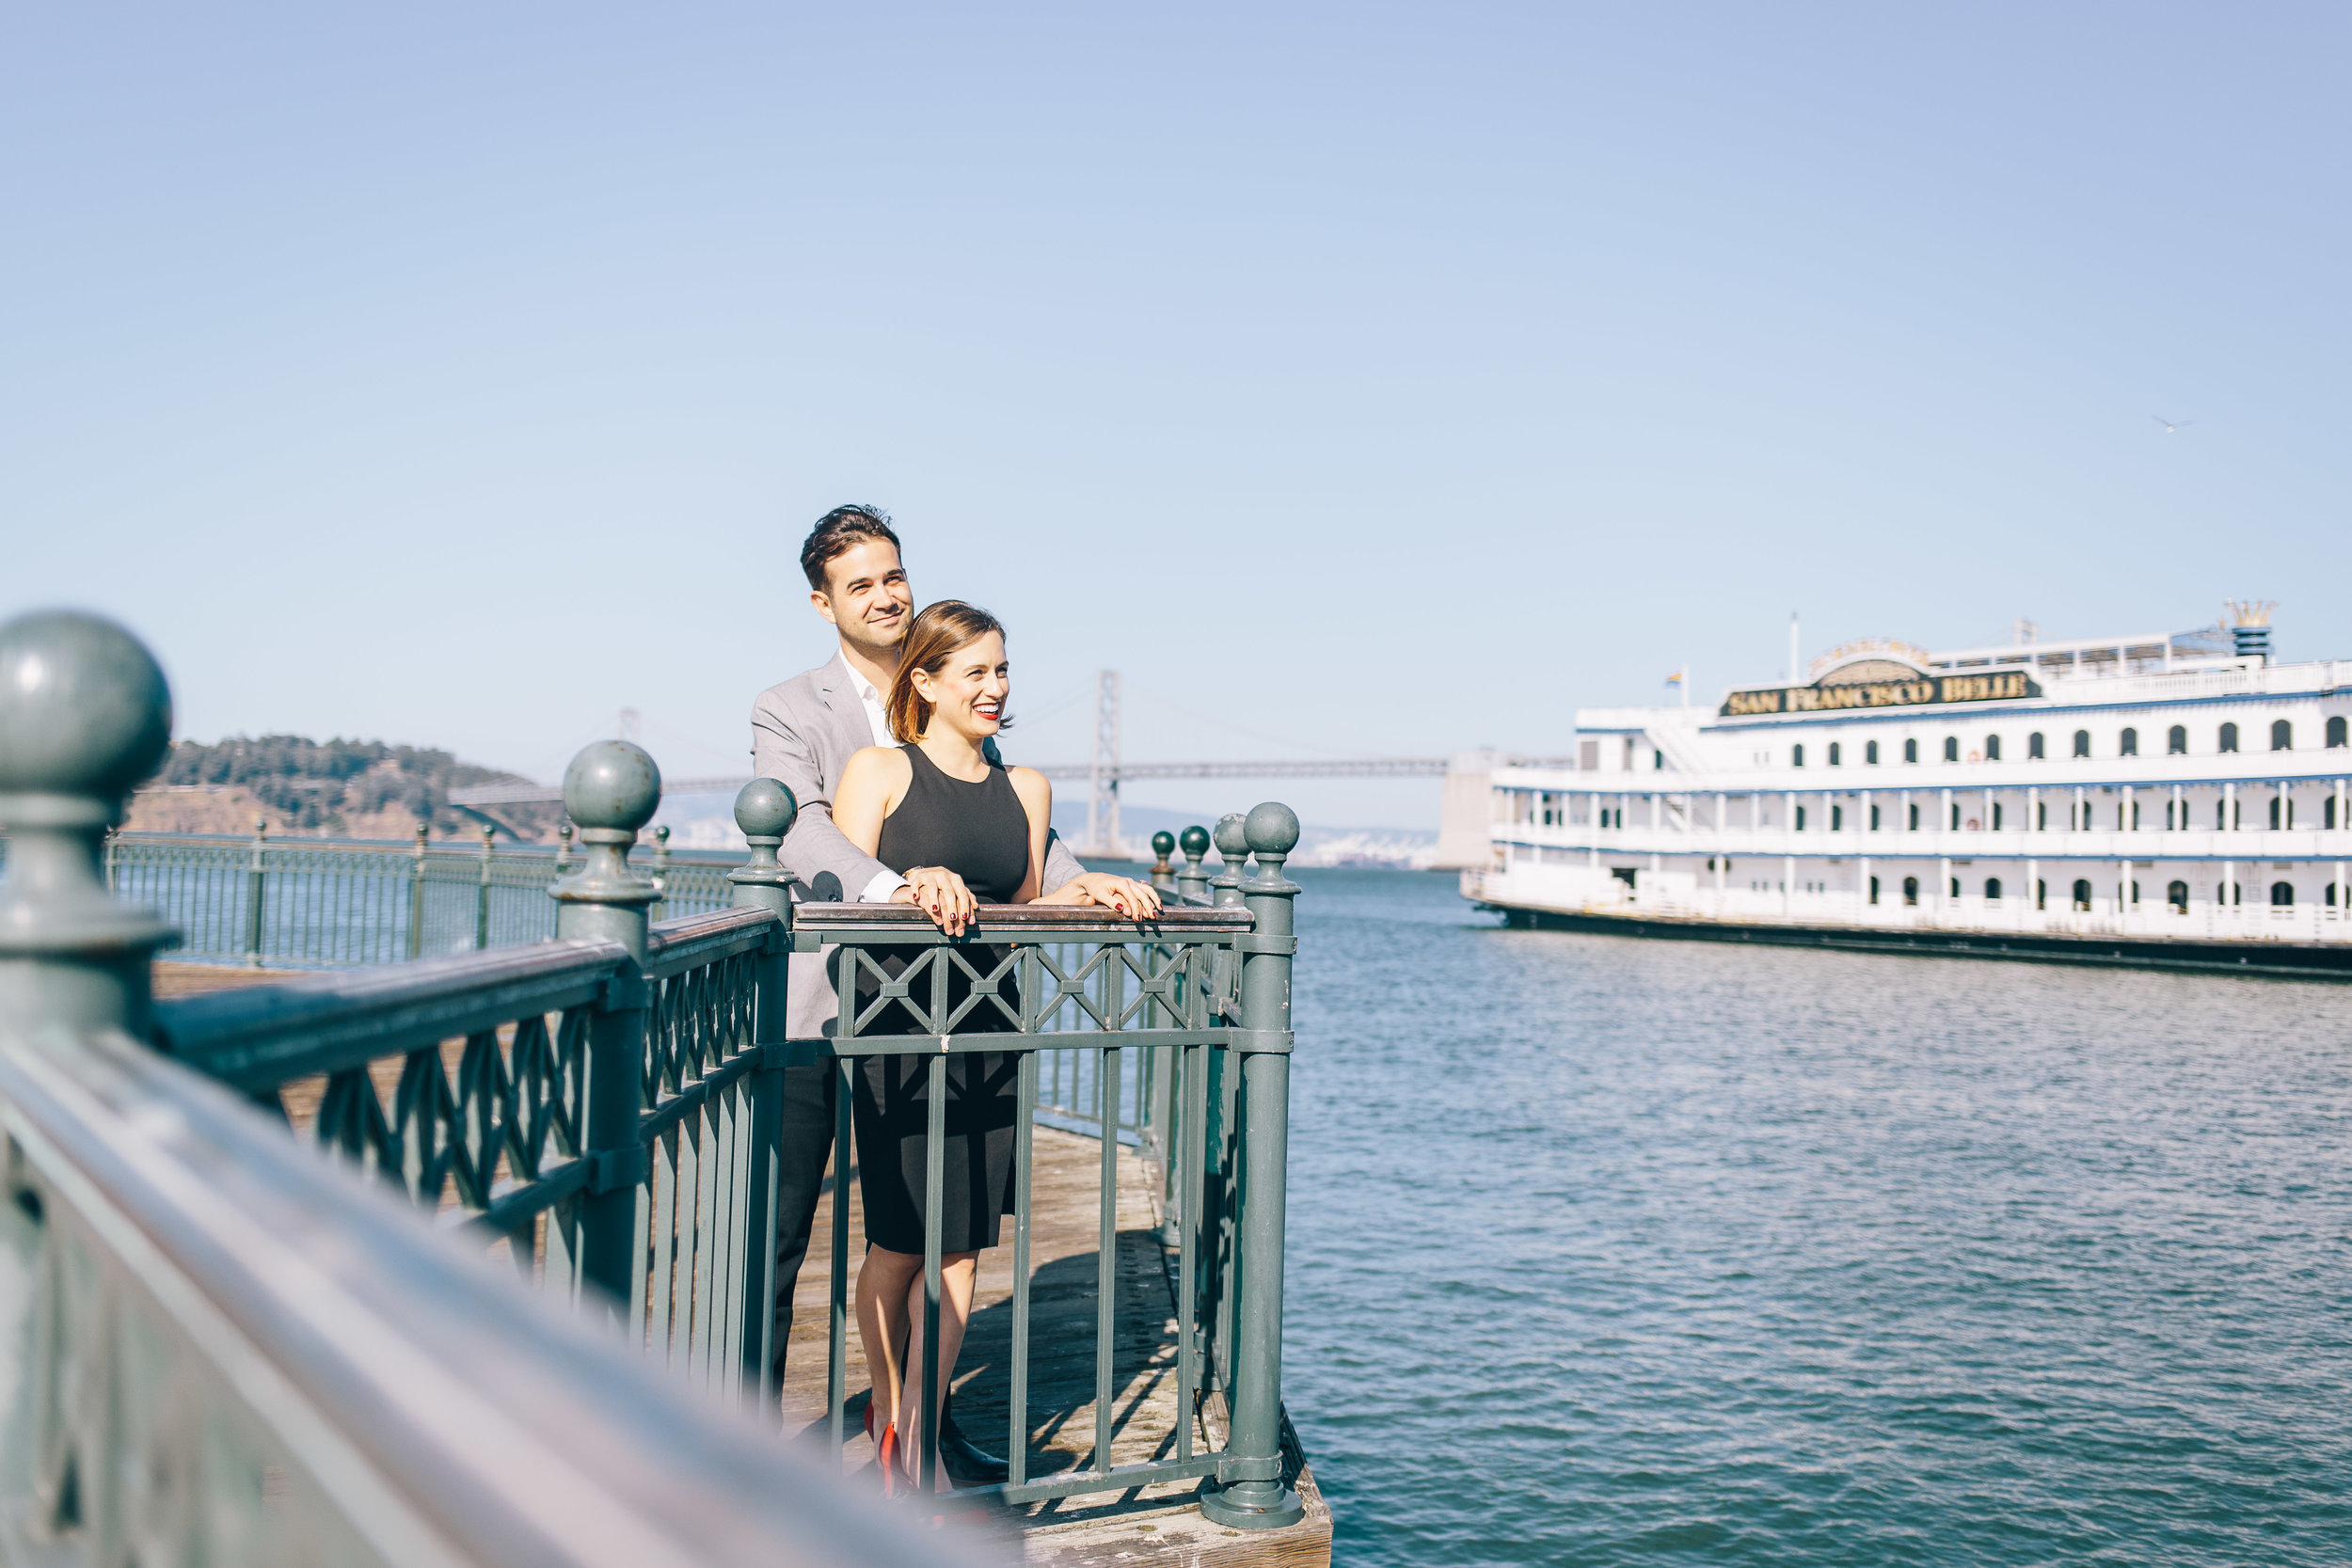 Pier 7 Engagement Photos by JBJ Pictures - Pre-wedding Photo Session in San Francisco (3).jpg